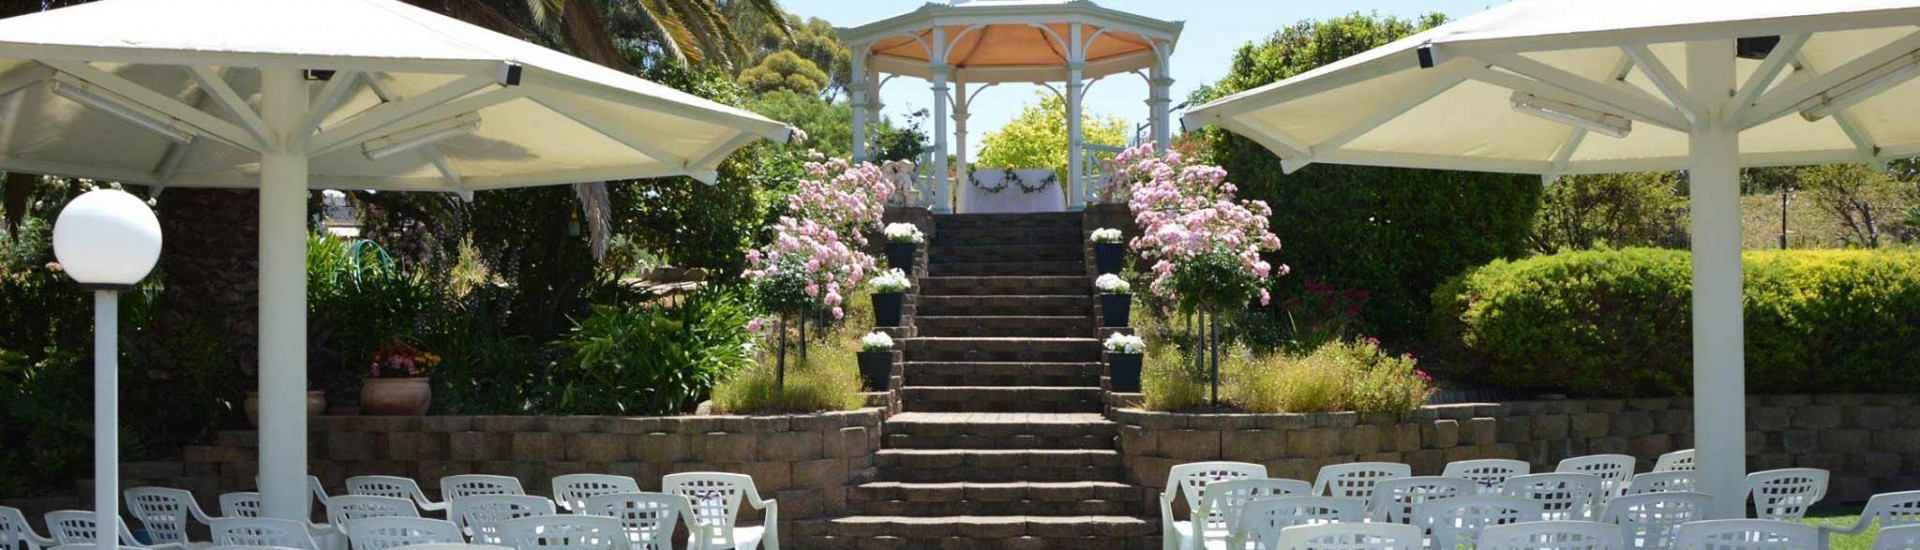 Best Gardens for Weddings Ceremony and Reception in Adelaide Hills